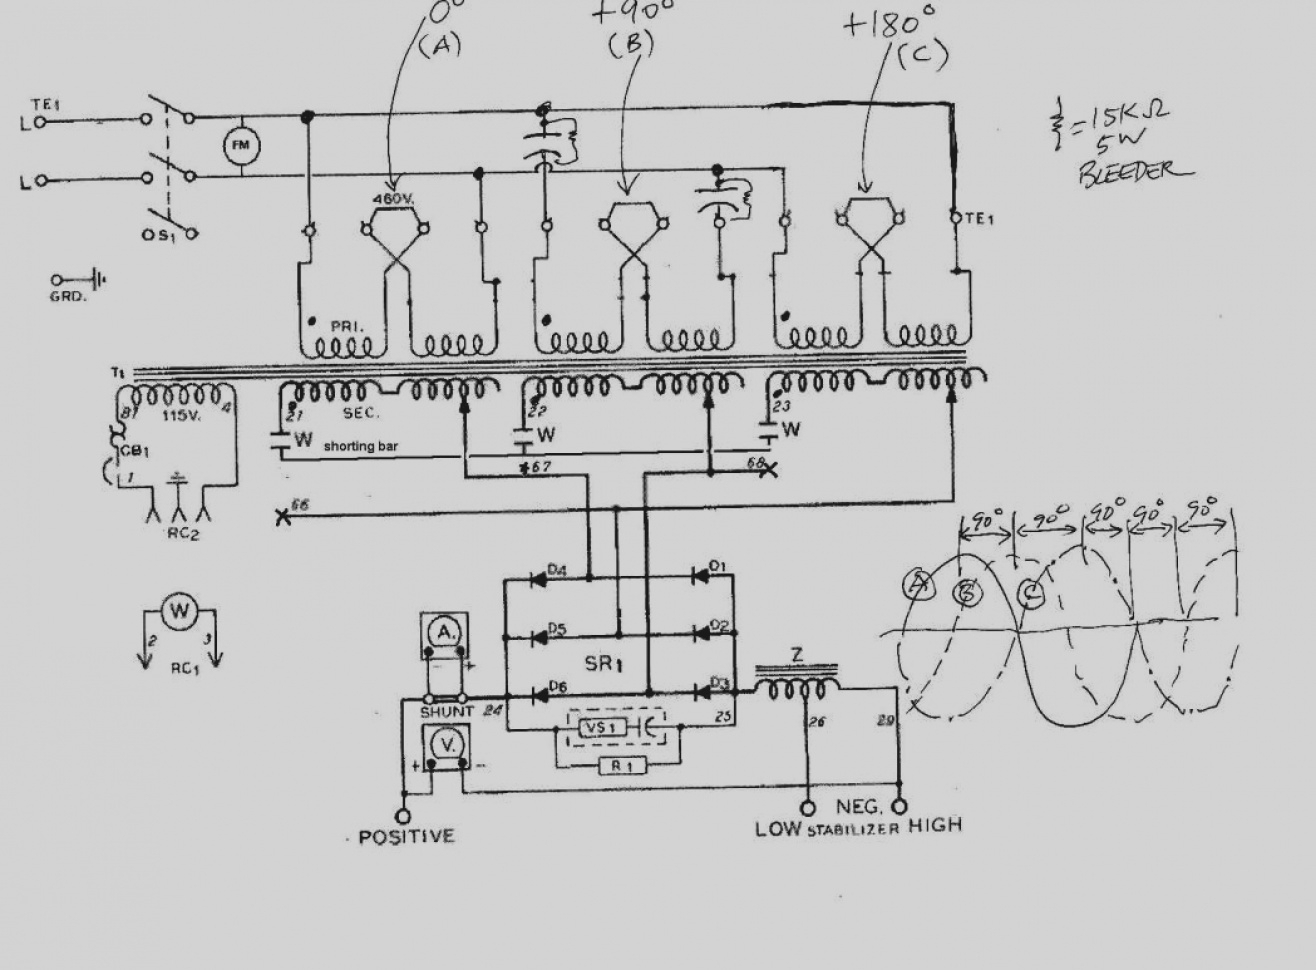 hobart wiring diagrams circuit diagram templatehobart wiring diagram wiring diagramshobart dishwasher am14 wiring diagram free wiring diagramhobart dishwasher am14 wiring diagram